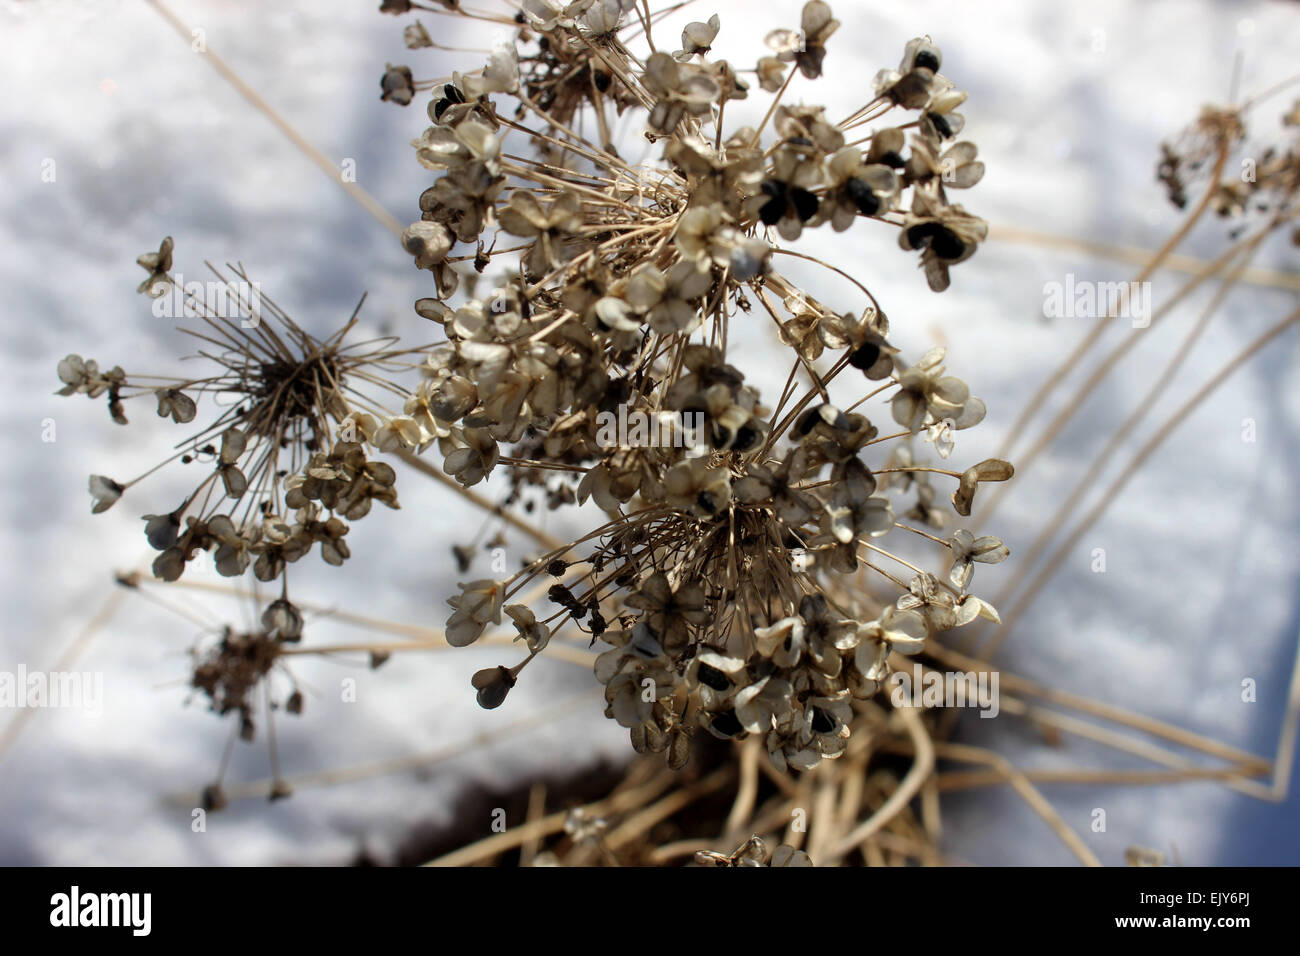 Photographic detail of a flowering plant that survive the Canadian winter growing on snow - Stock Image